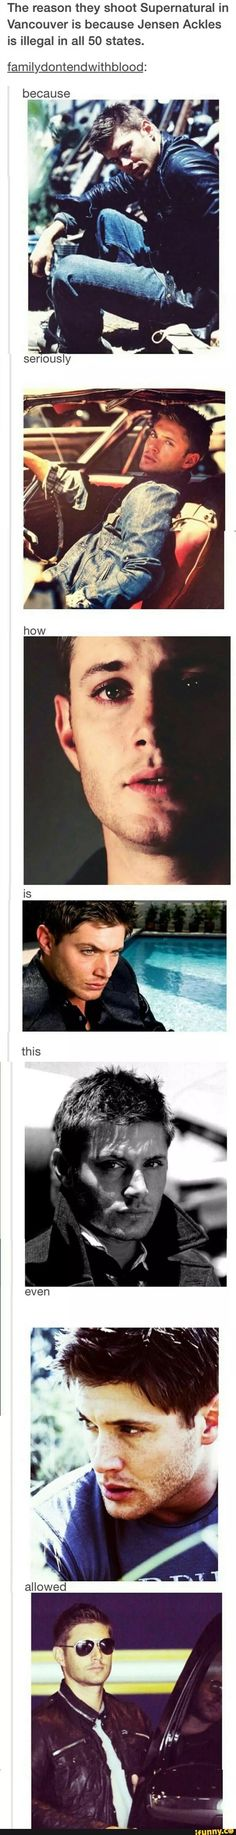 Jensen is illegal in all 50 states